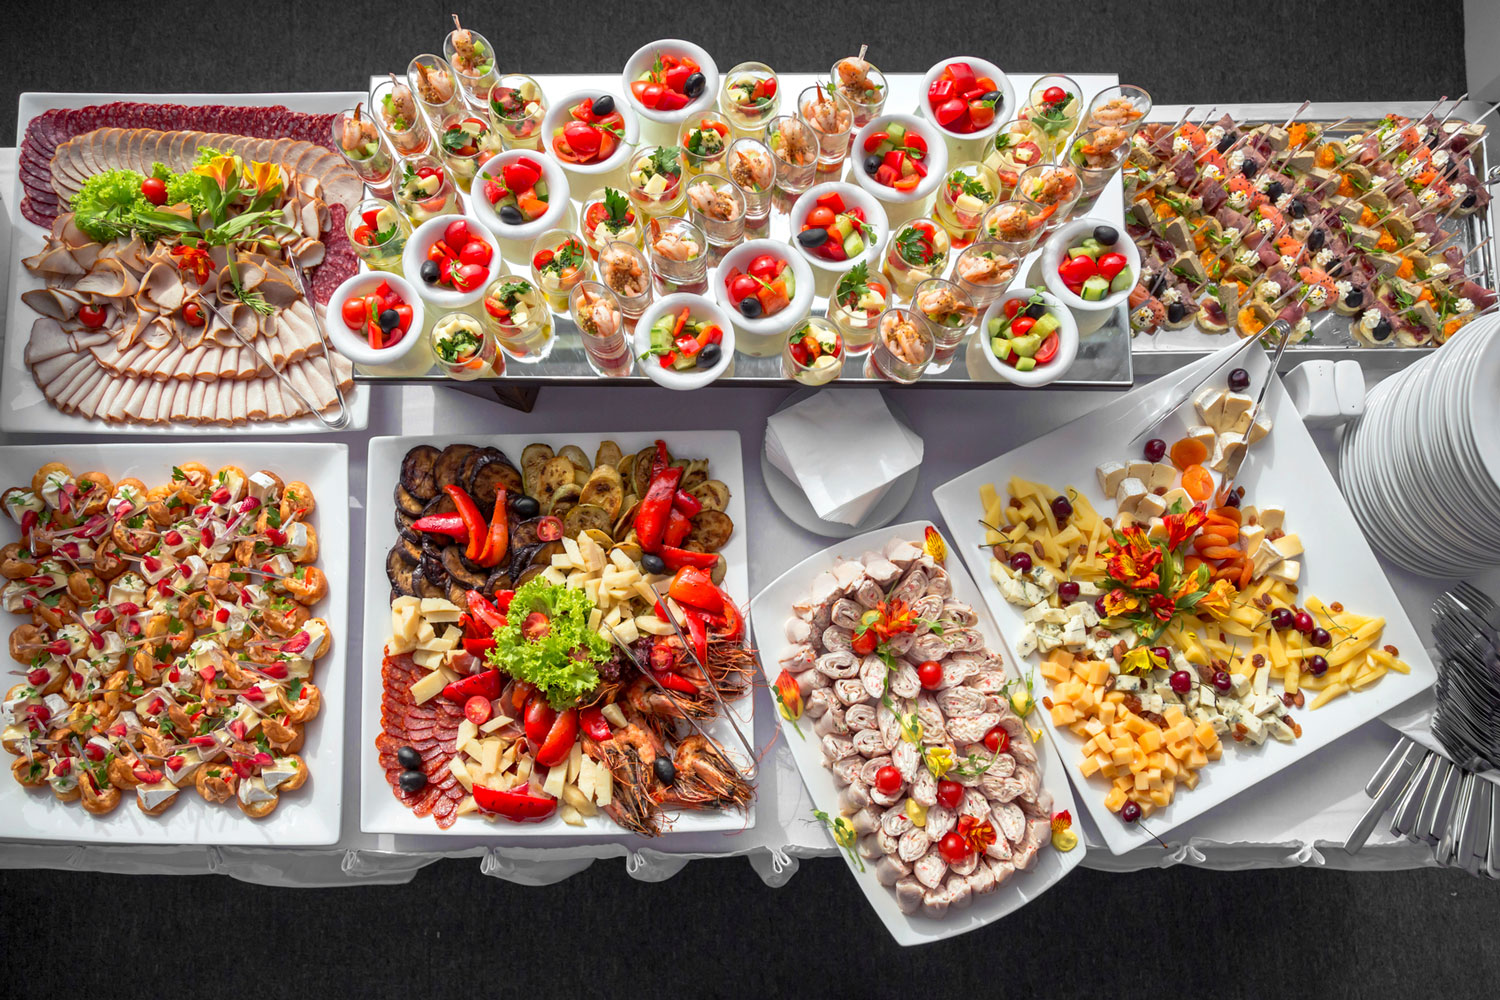 7 Fun Catering Ideas For Your Upcoming Social Events